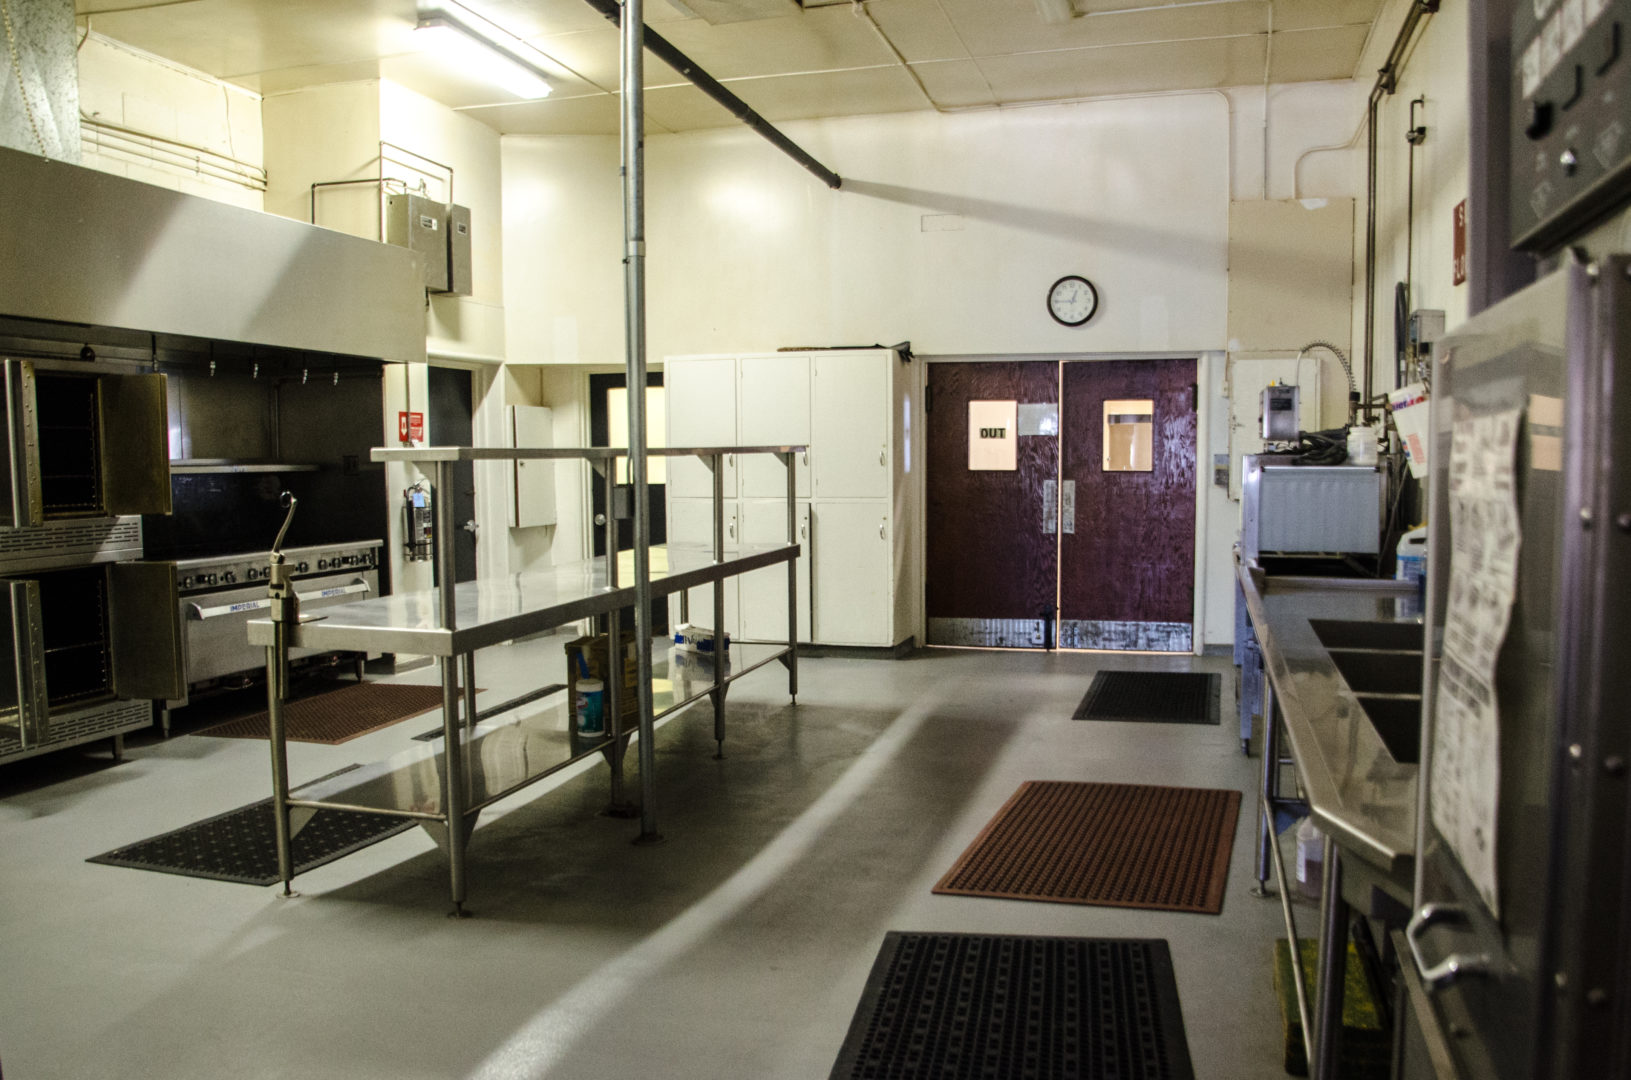 Commercial Kitchen Facilities Available for Rent